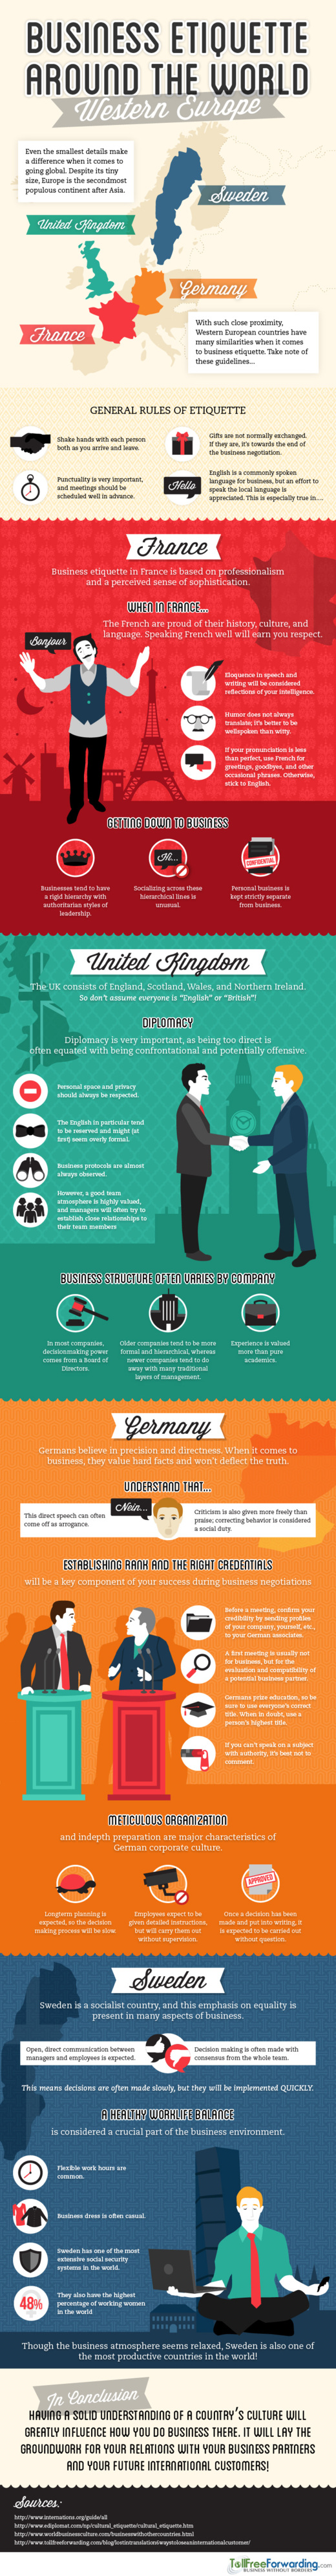 Business etiquette around the world asia western europe infographic business etiquette around the world western europe edition techstars reheart Choice Image